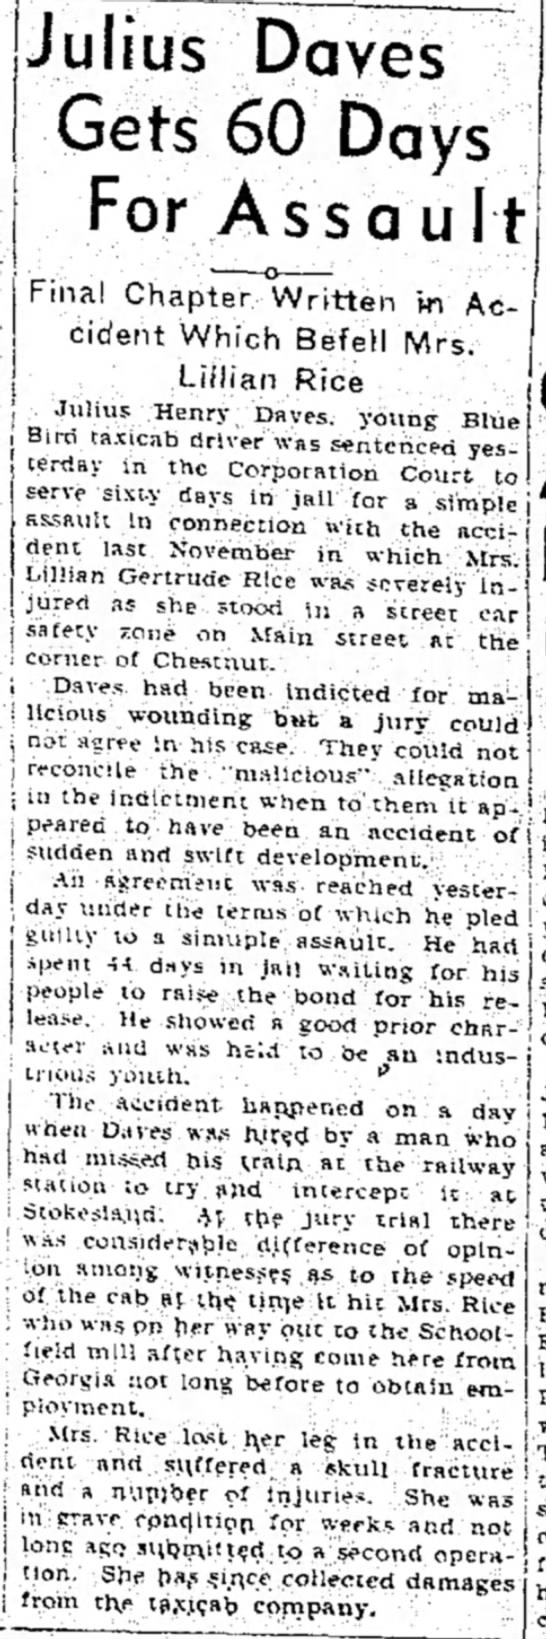 Julius Daves Gets 60 Days for Assault - The Bee - Tue, Jul 07, 1936 - Page 1 -